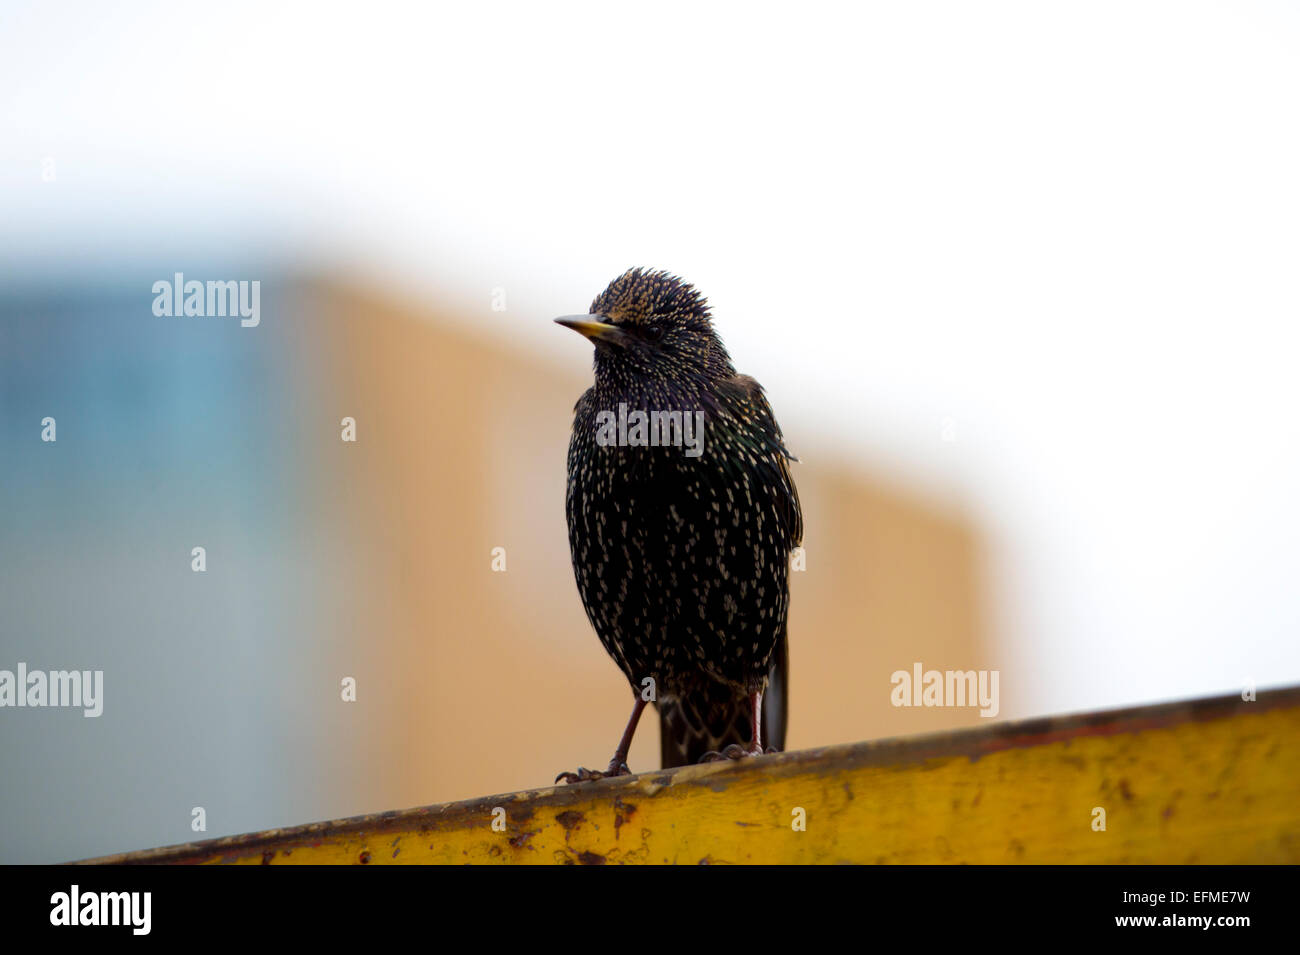 A young starling at Amsterdam's Dappermarkt - Stock Image